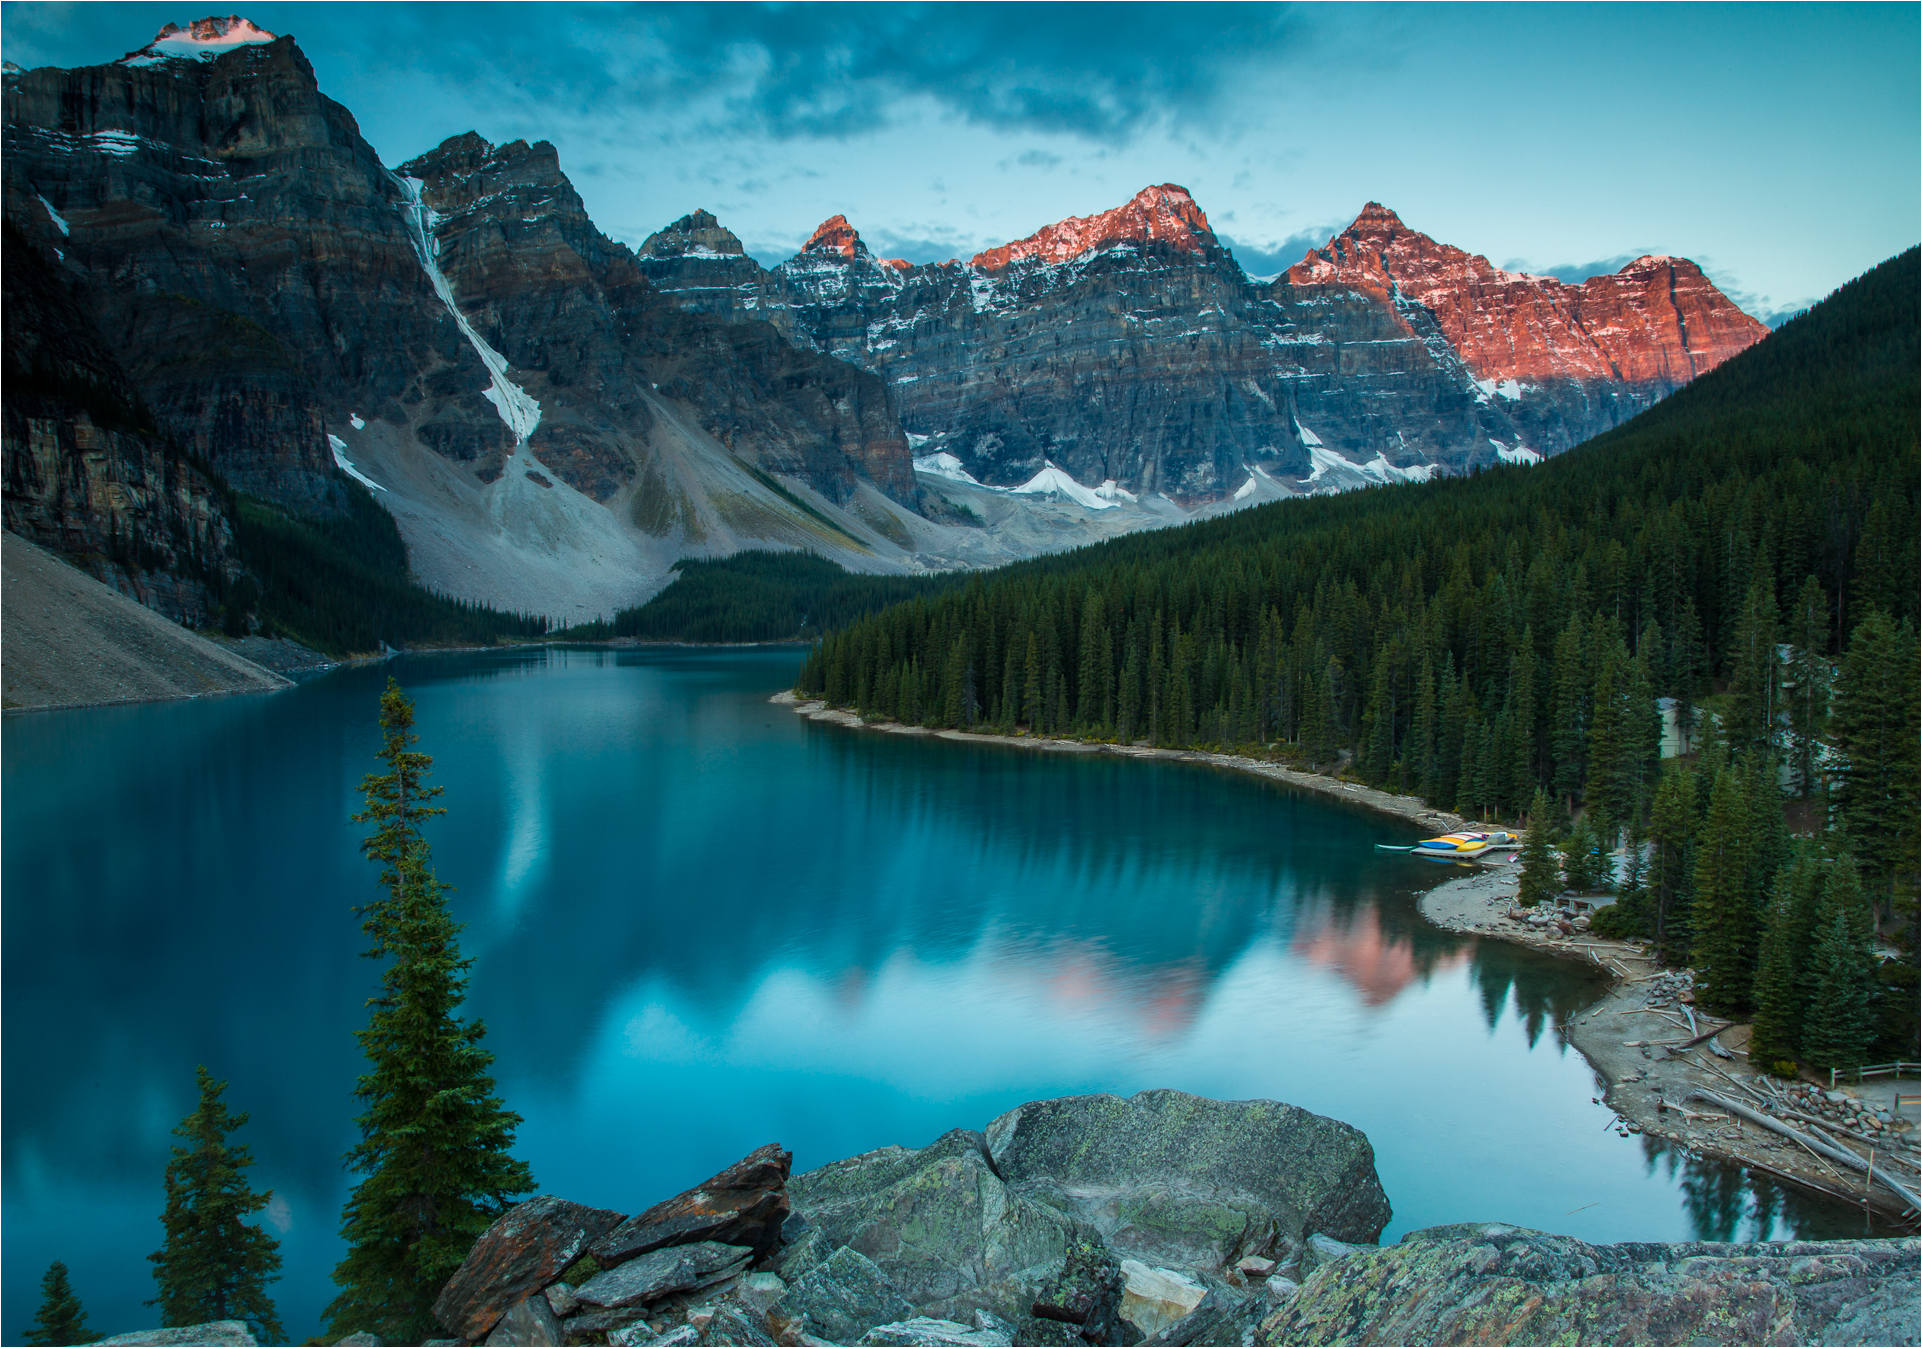 Moraine Lake Backgrounds on Wallpapers Vista